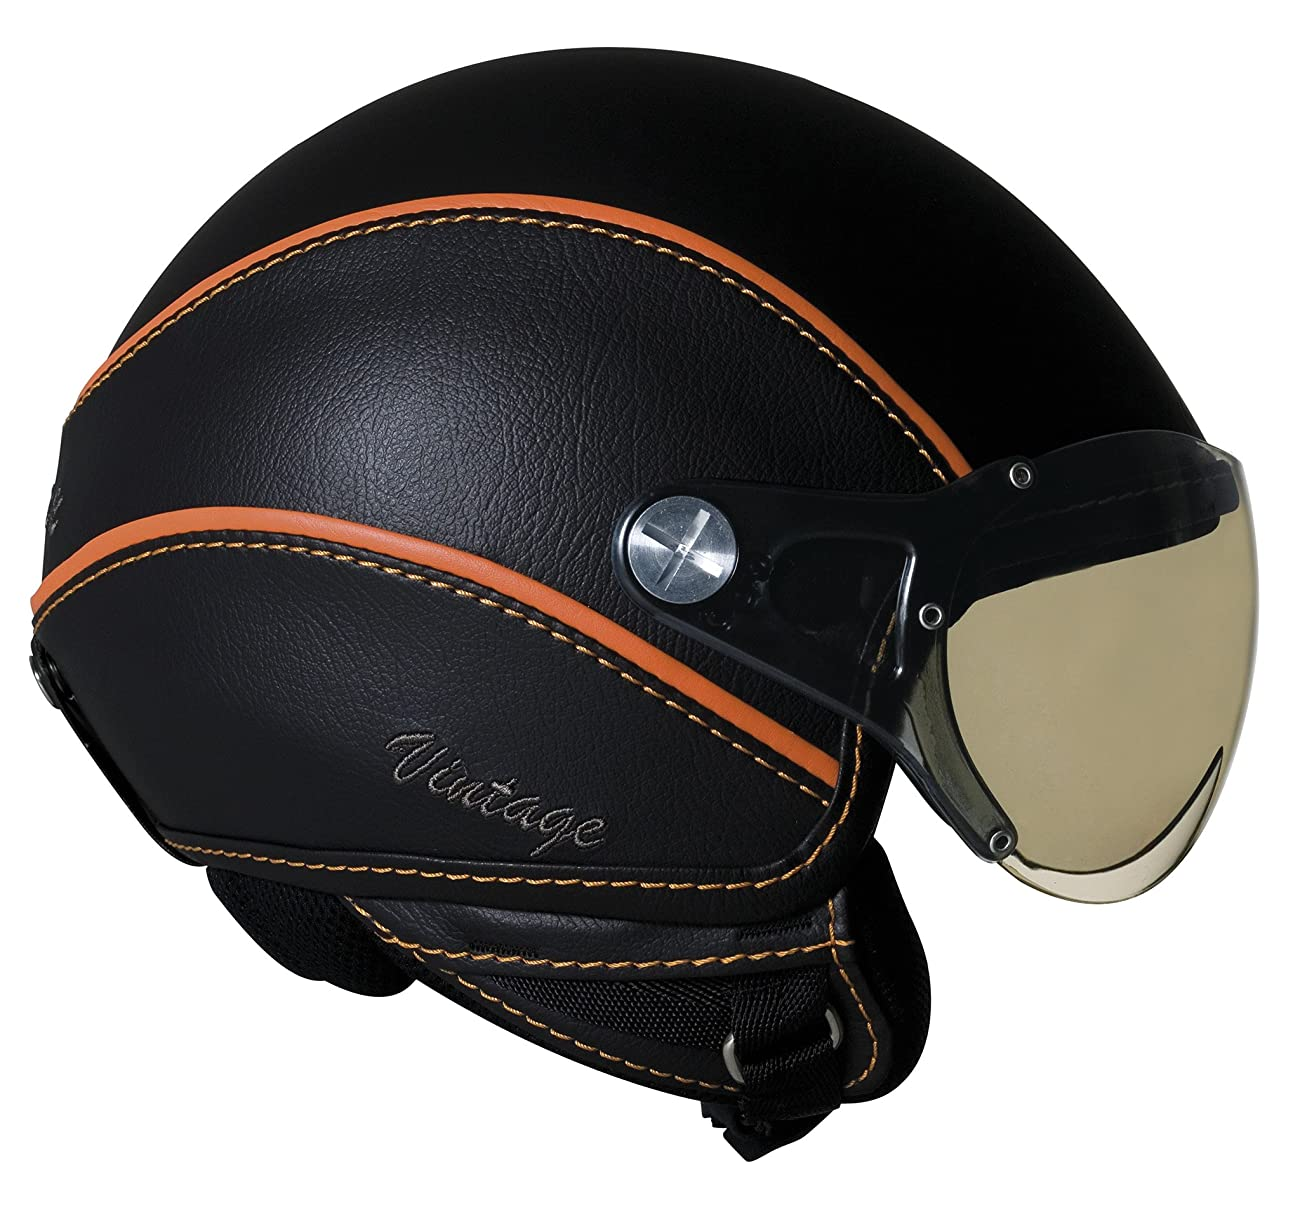 Nexx Vintage X60 Harley Touring Motorcycle Helmet - Black/Orange / X-Large 0